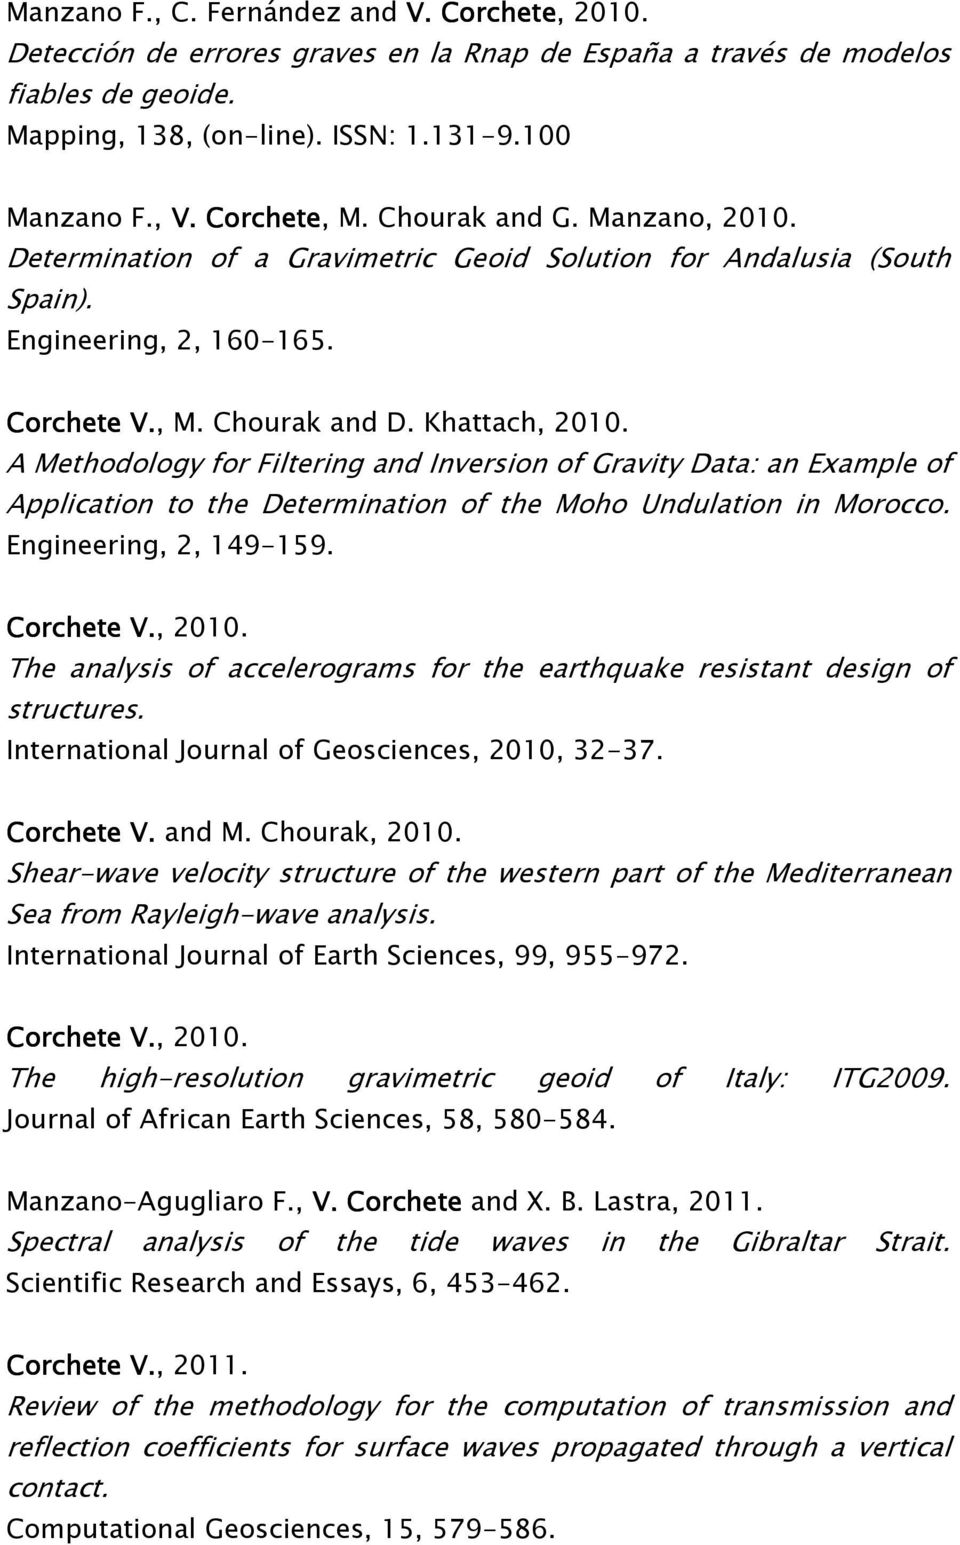 A Methodology for Filtering and Inversion of Gravity Data: an Example of Application to the Determination of the Moho Undulation in Morocco. Engineering, 2, 149-159. Corchete V., 2010.